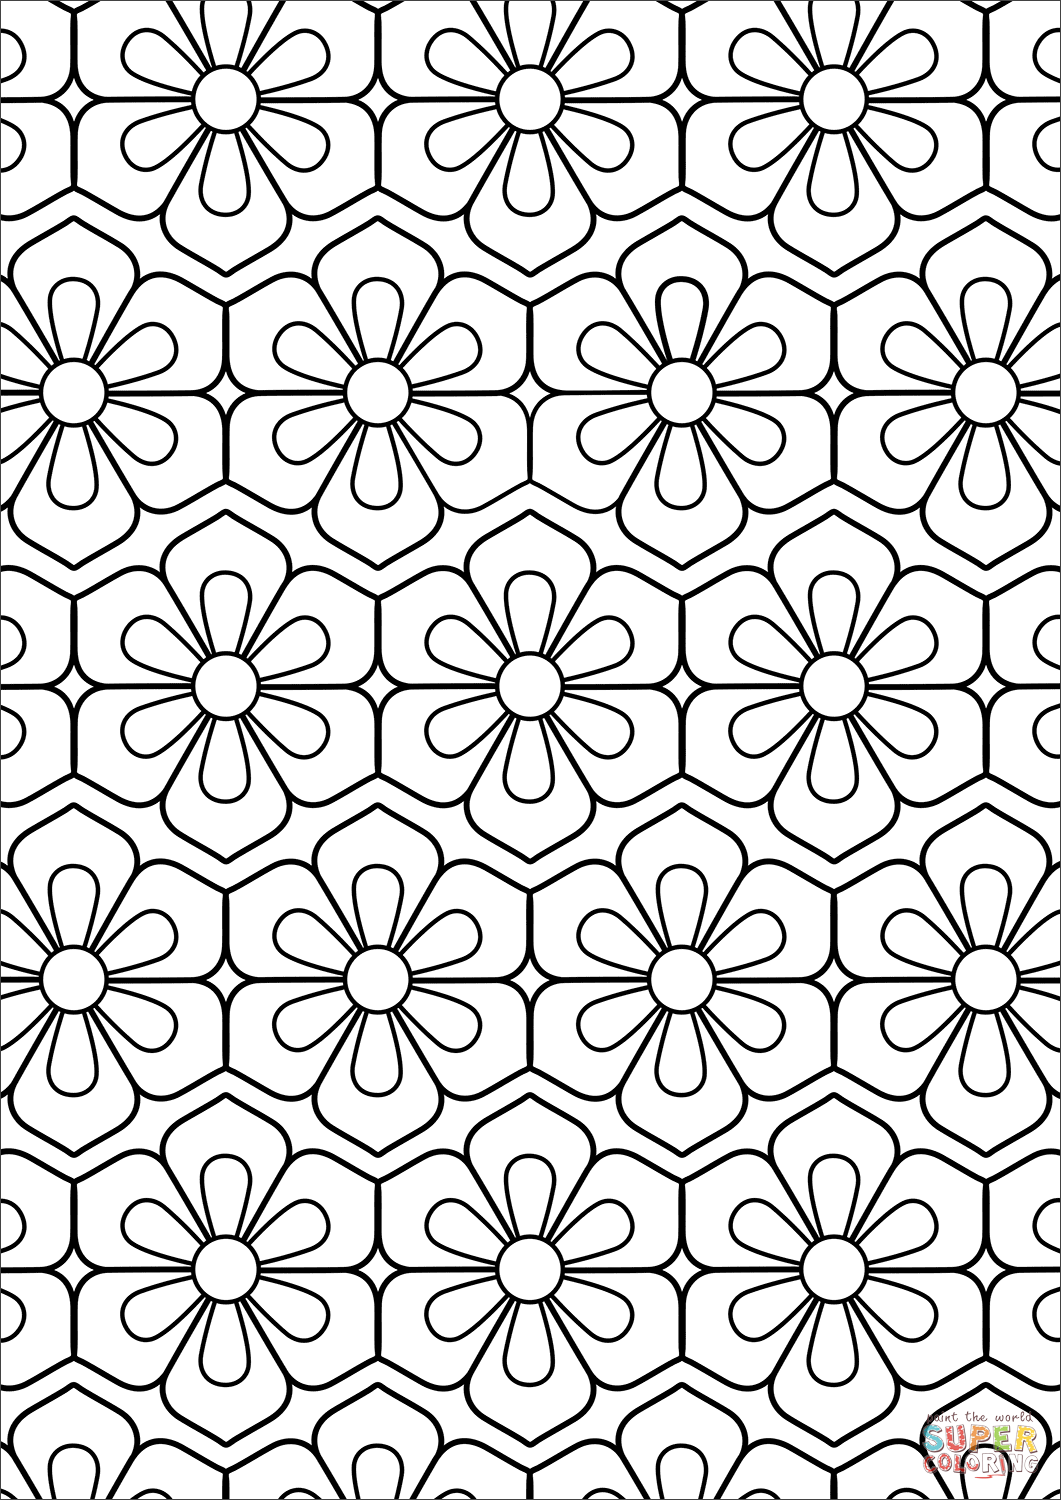 coloring patterns pages flower pattern coloring page free printable coloring pages pages patterns coloring